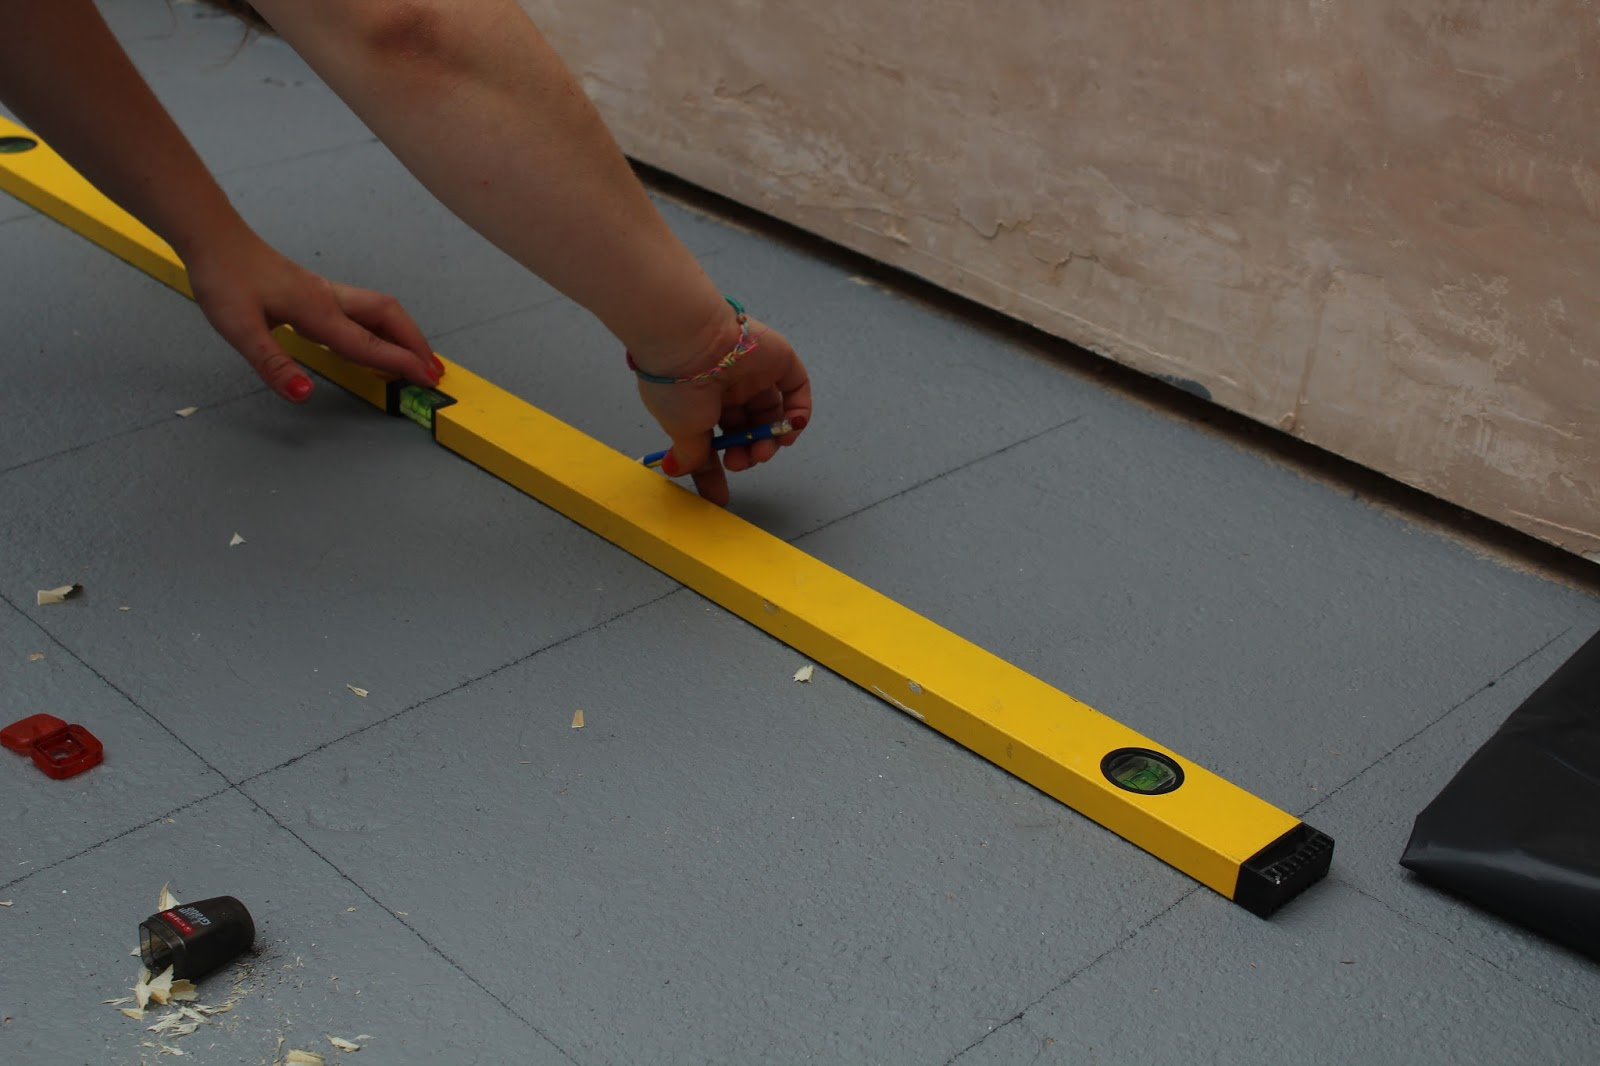 DIY tutorial for quirky fun painted floor